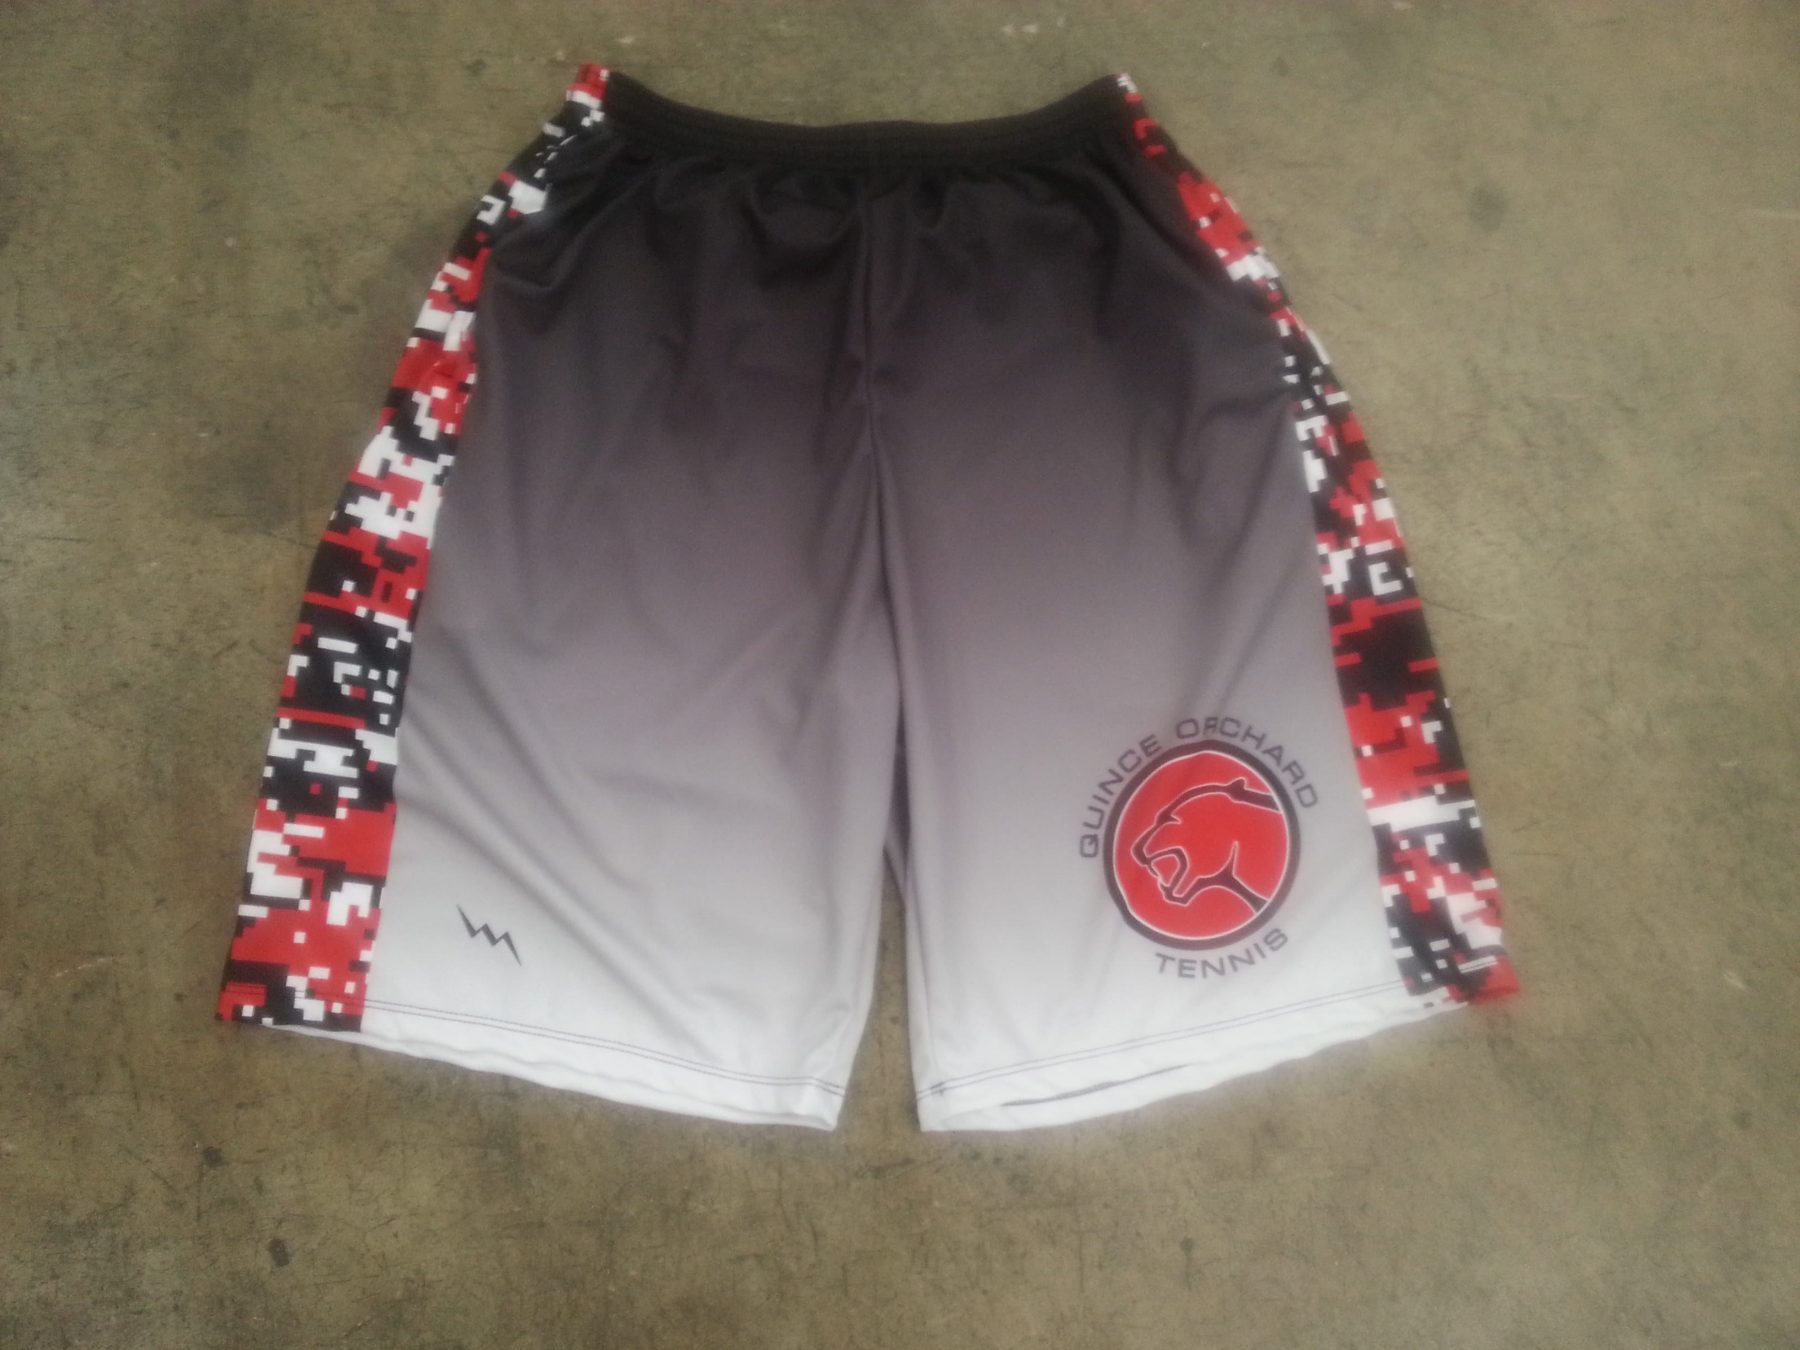 sublimated tennis shorts